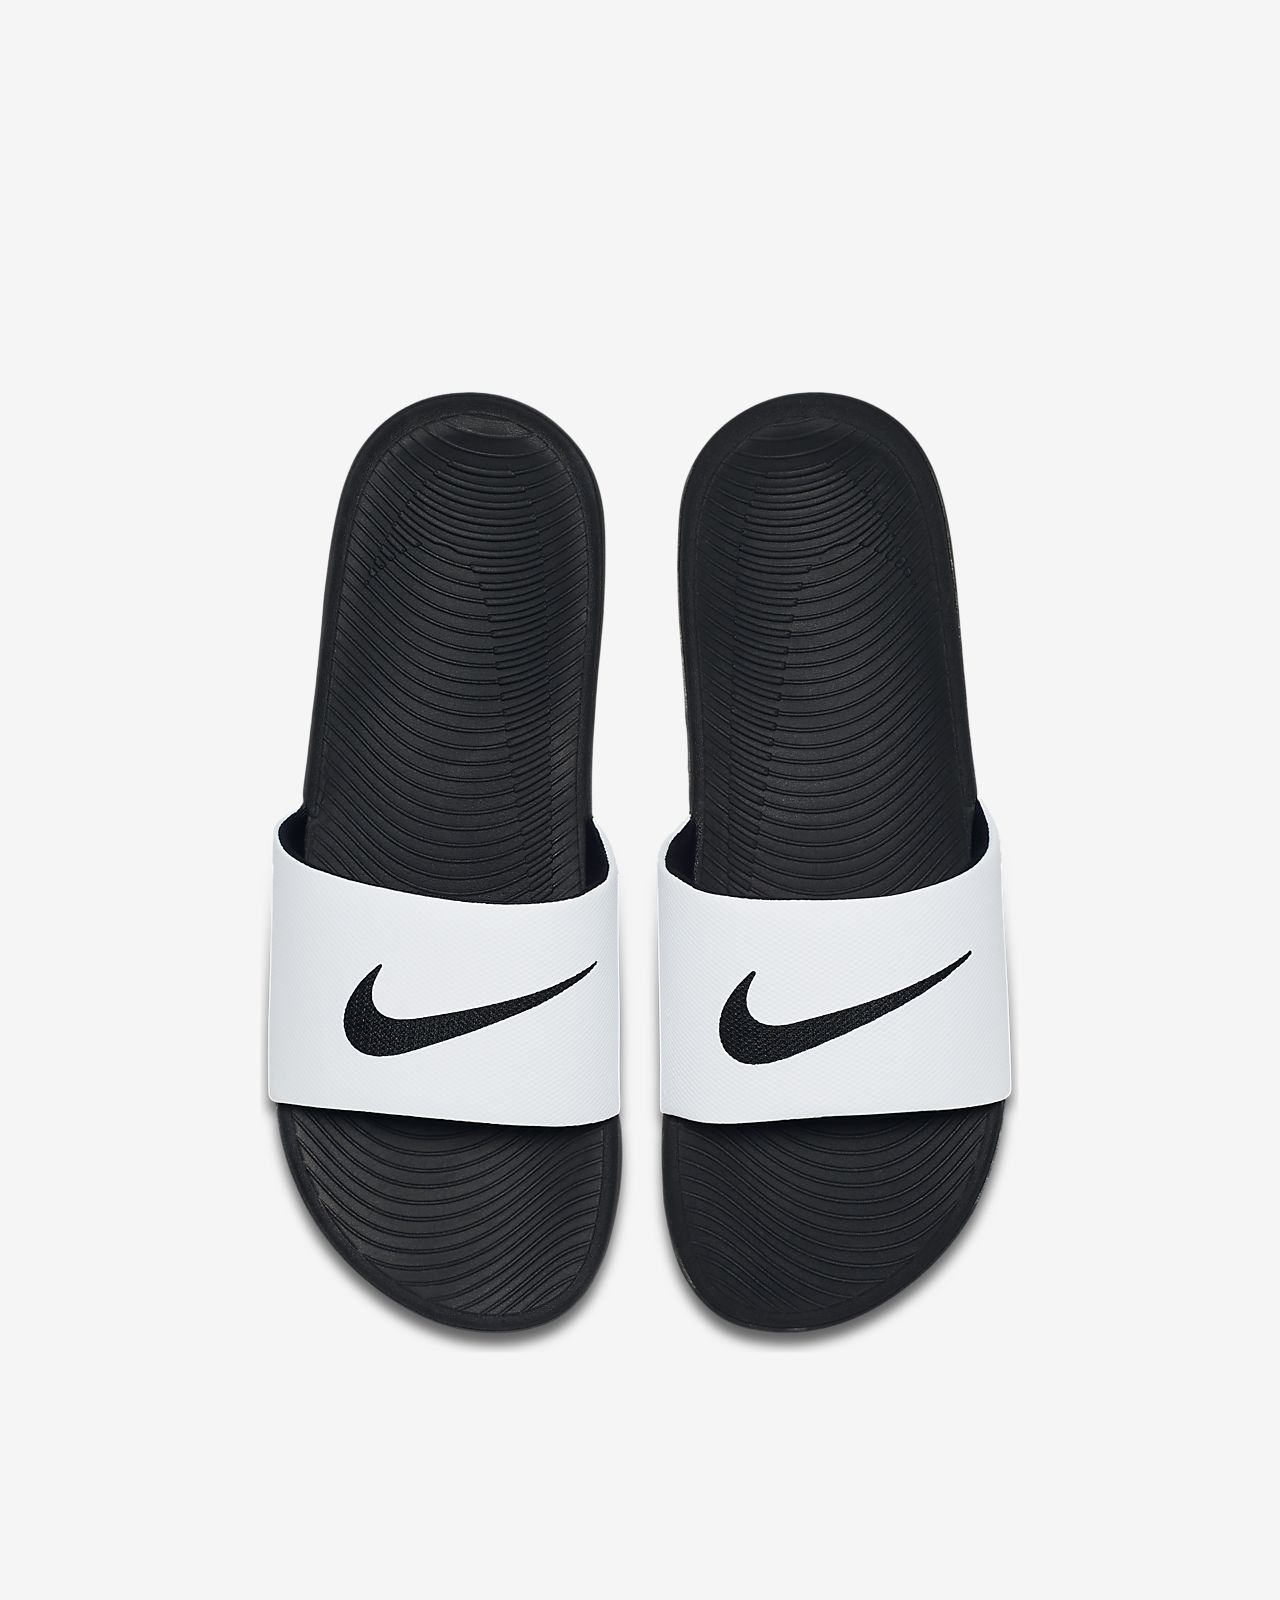 competitive price e7ea0 4fcbd Low Resolution Nike Kawa Men s Slide Nike Kawa Men s Slide